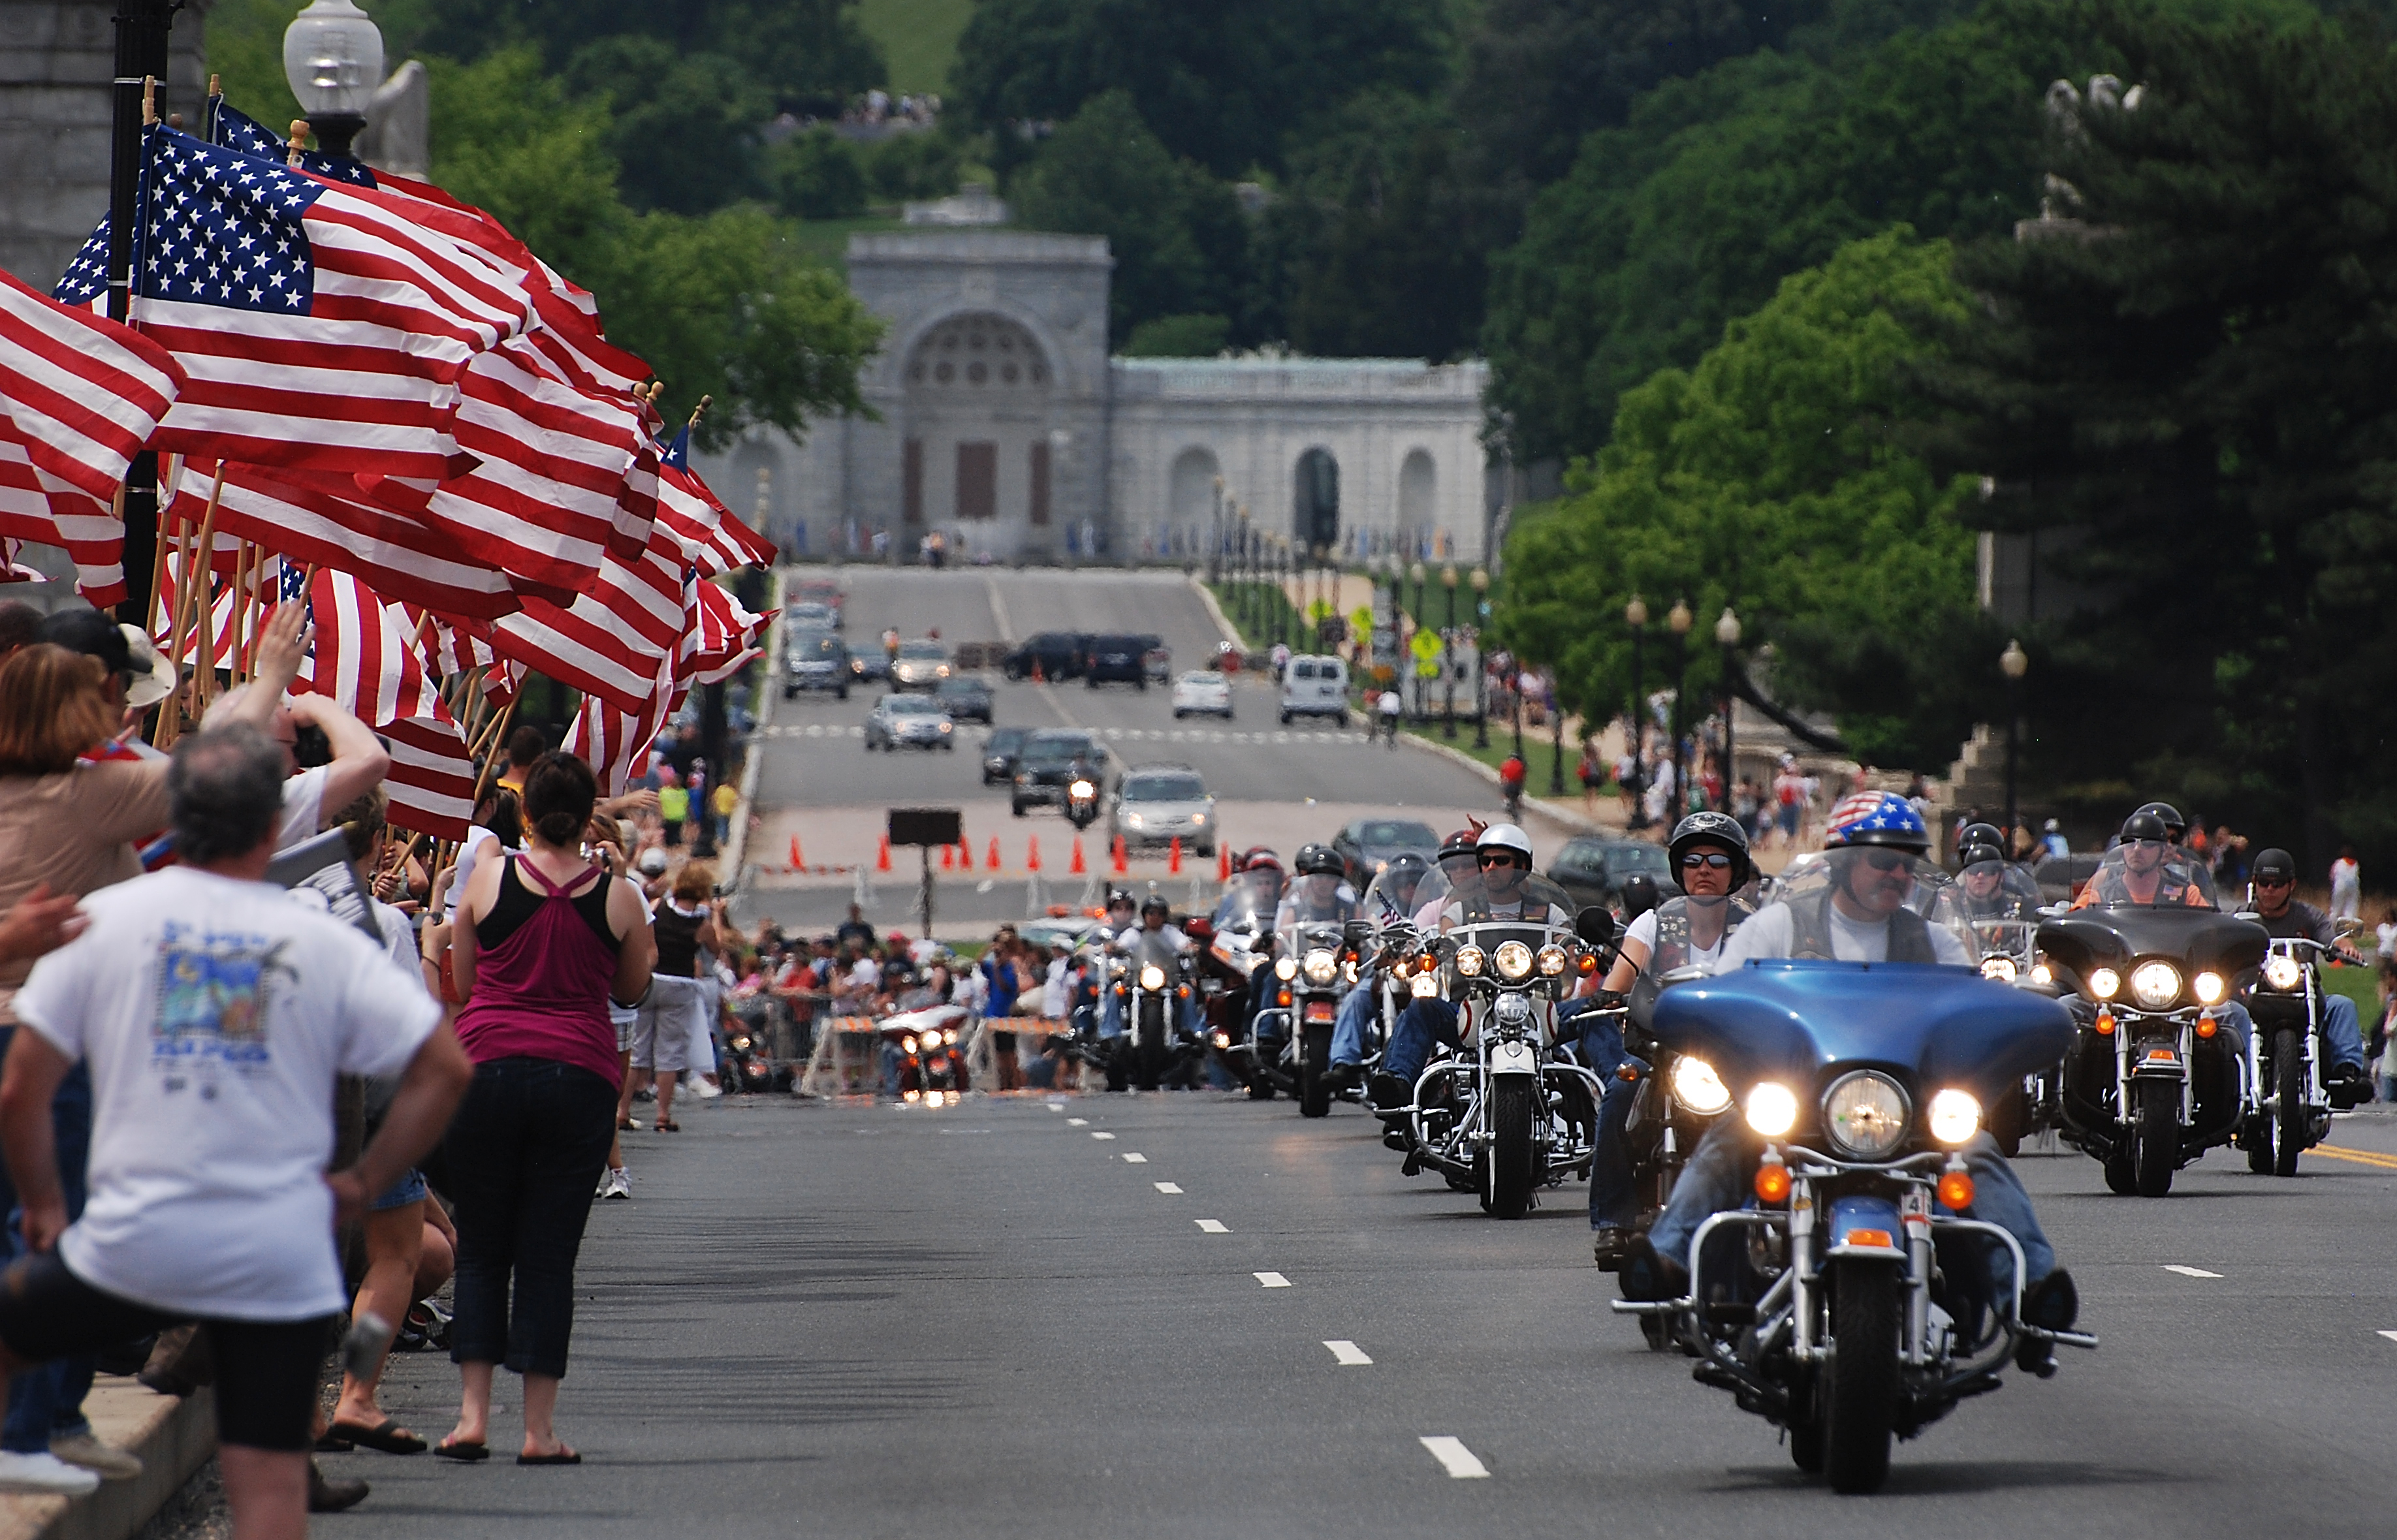 Rolling Thunder: Remembrance isn't relative, it's absolute